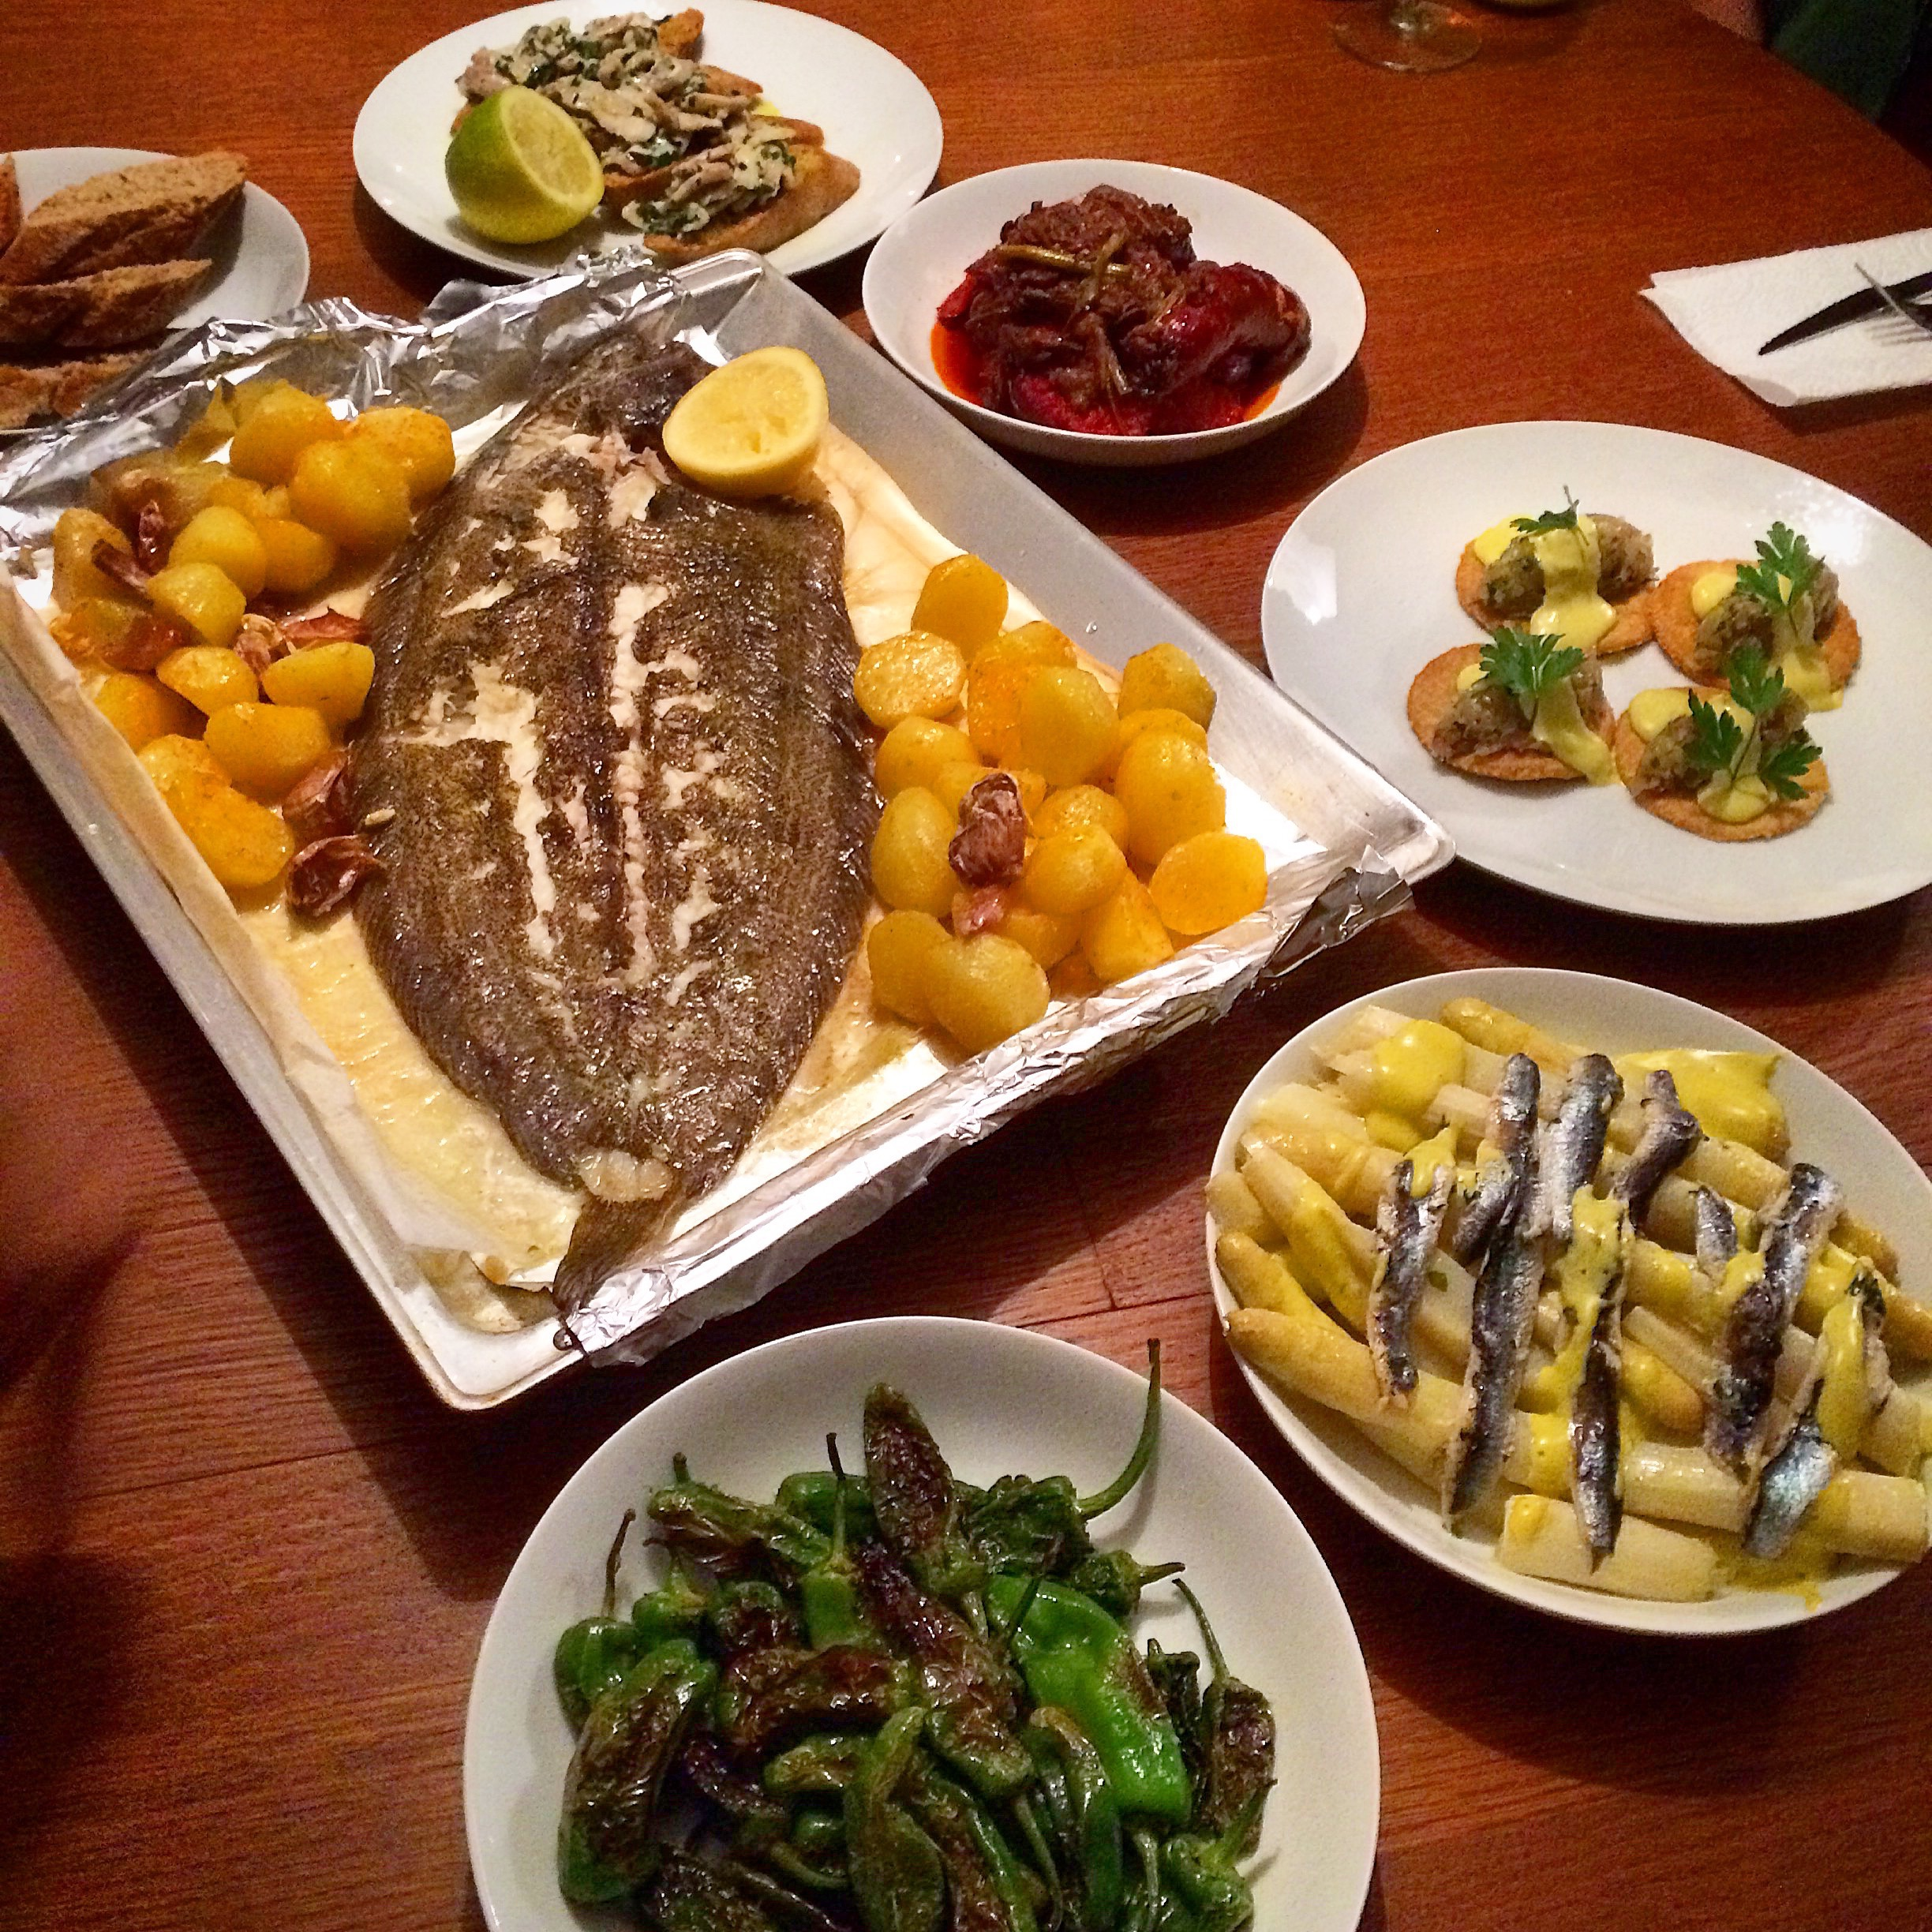 Our feast from Merca    do La Brexta     -Whole Baked Sole with lemon, garlic & paprika potatoes     -Hake Glands in Garlic Butter    -Chorizo in Red Wine    -Mackerel Tartare    -White Asparagus with Anchovy Mayo